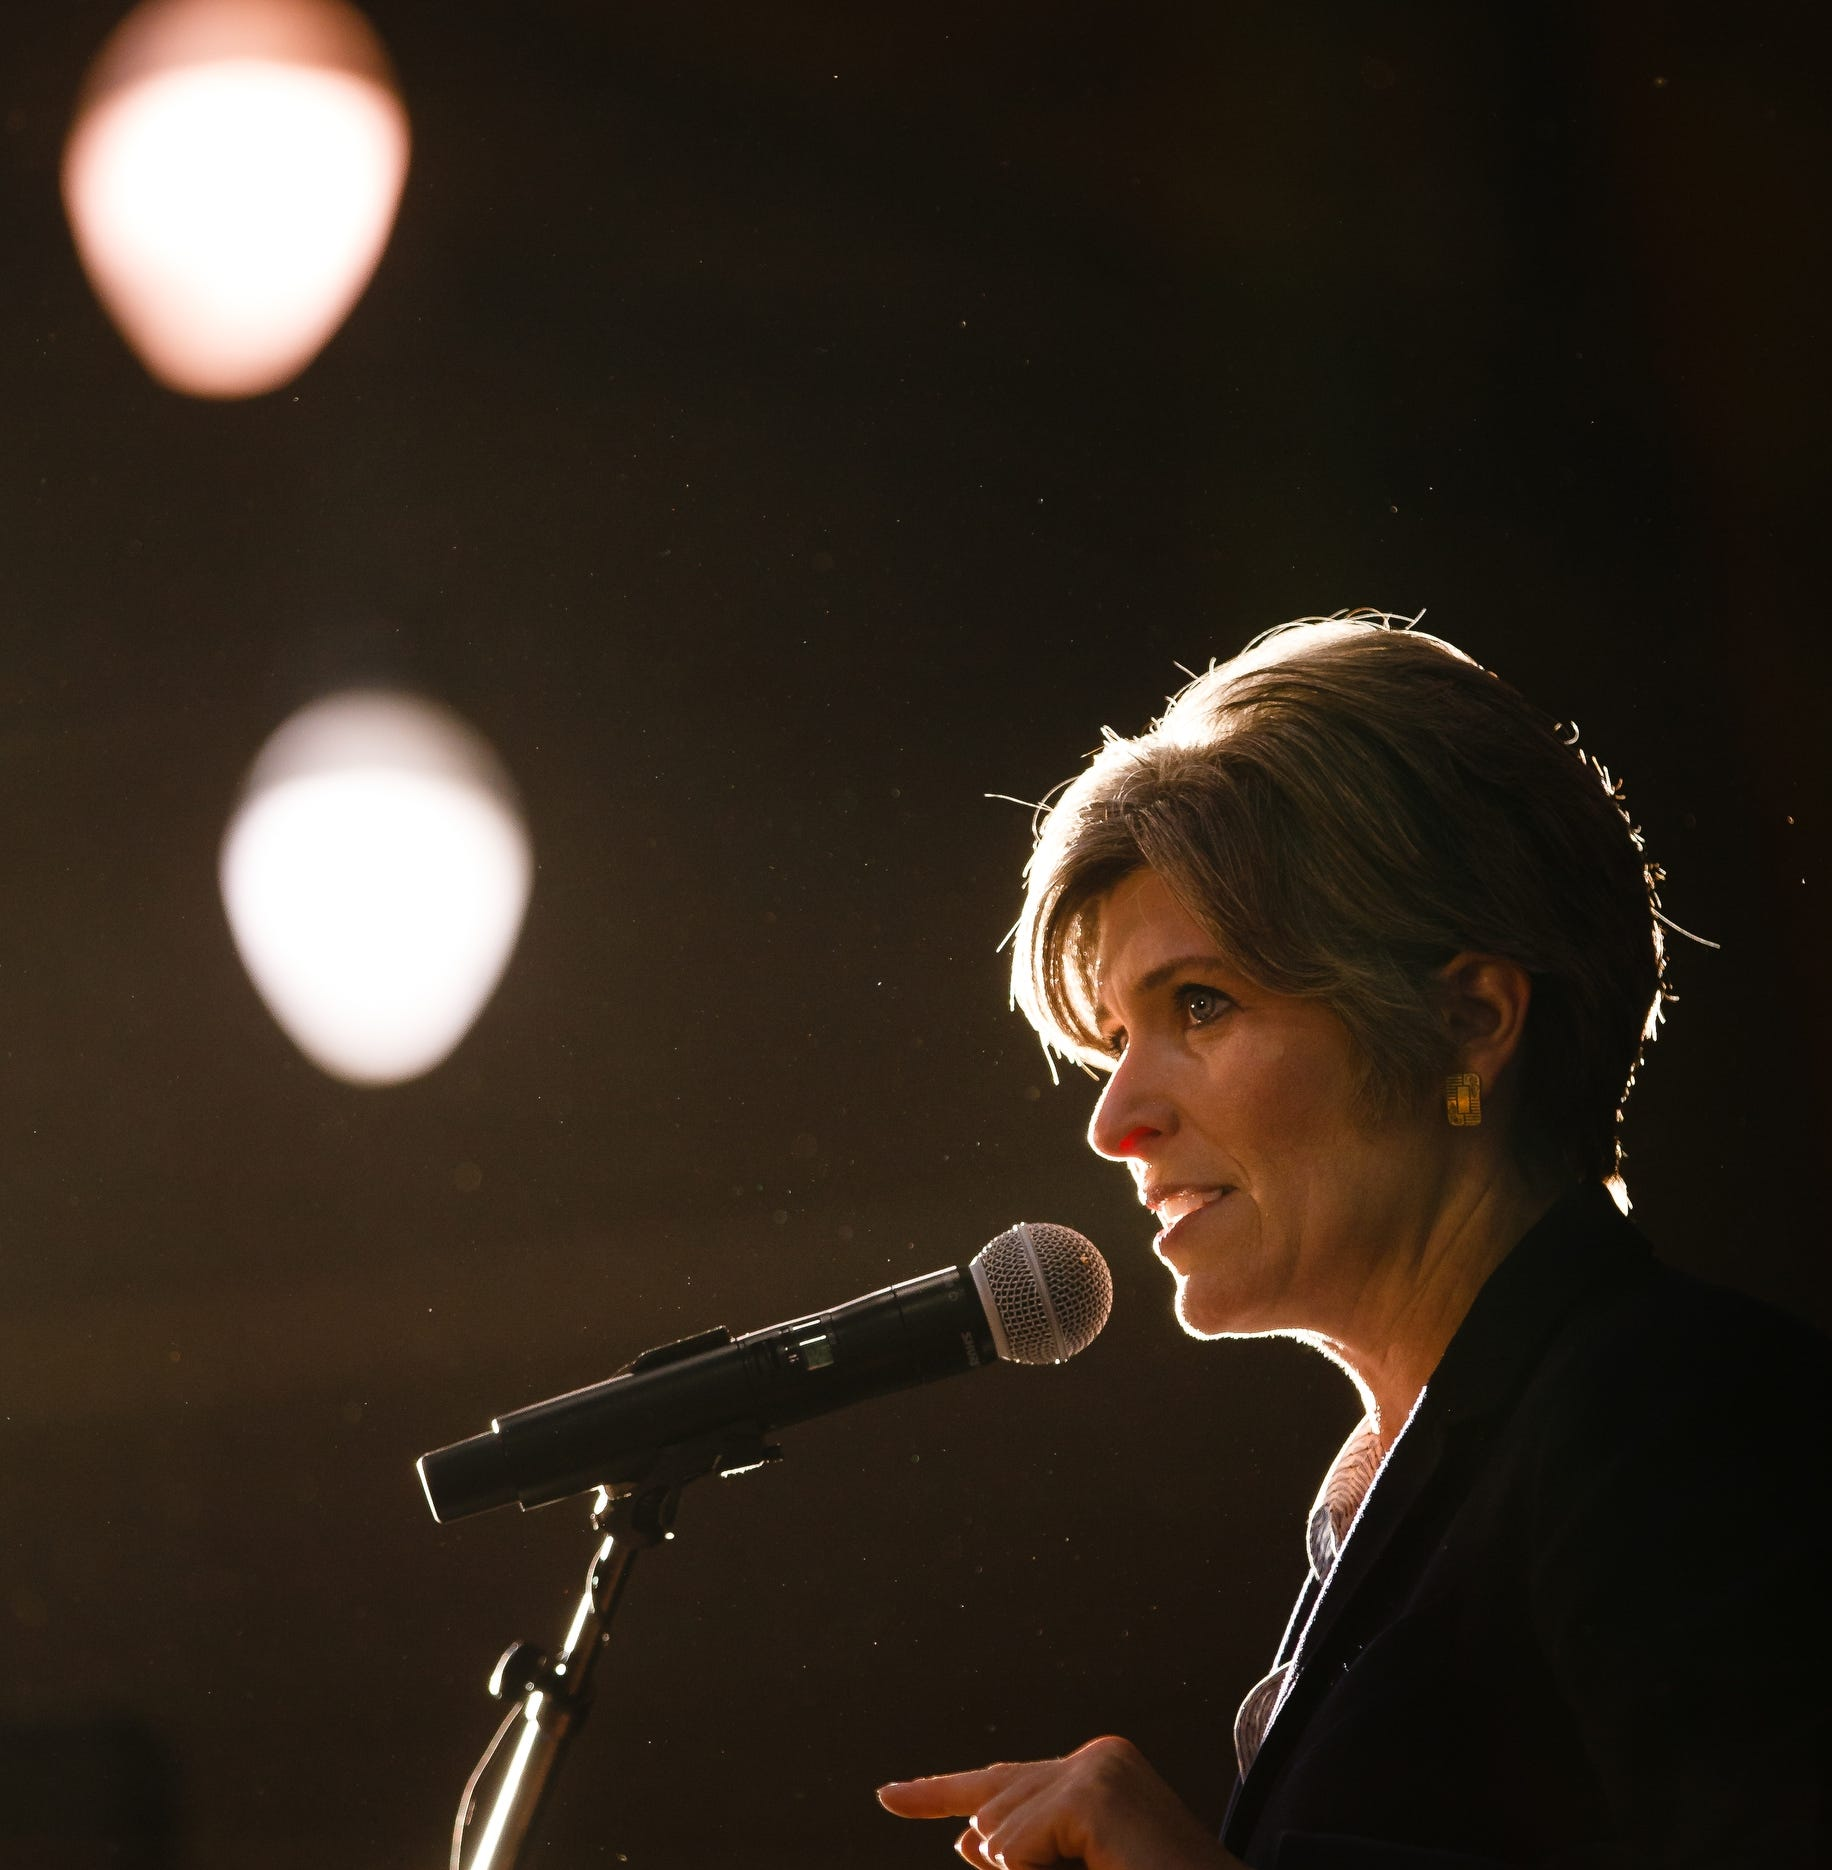 Sen. Joni Ernst says she turned down request to be vice president, according to divorce records